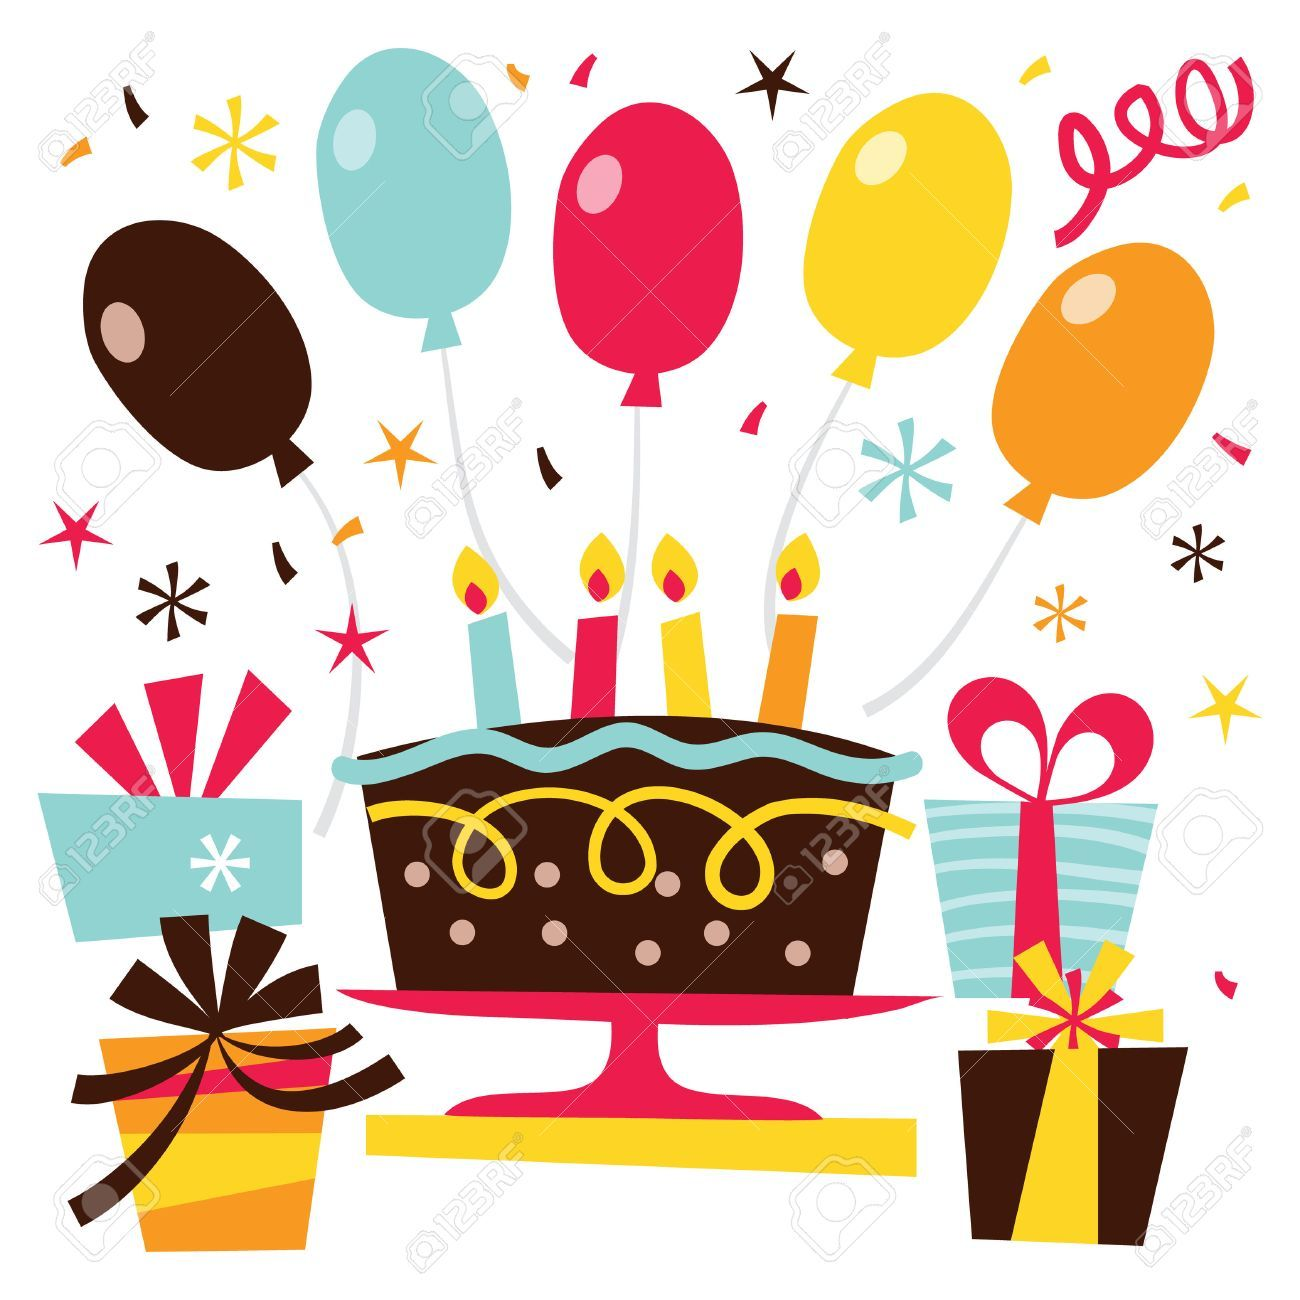 Clipart surprise birthday party 5 » Clipart Portal.